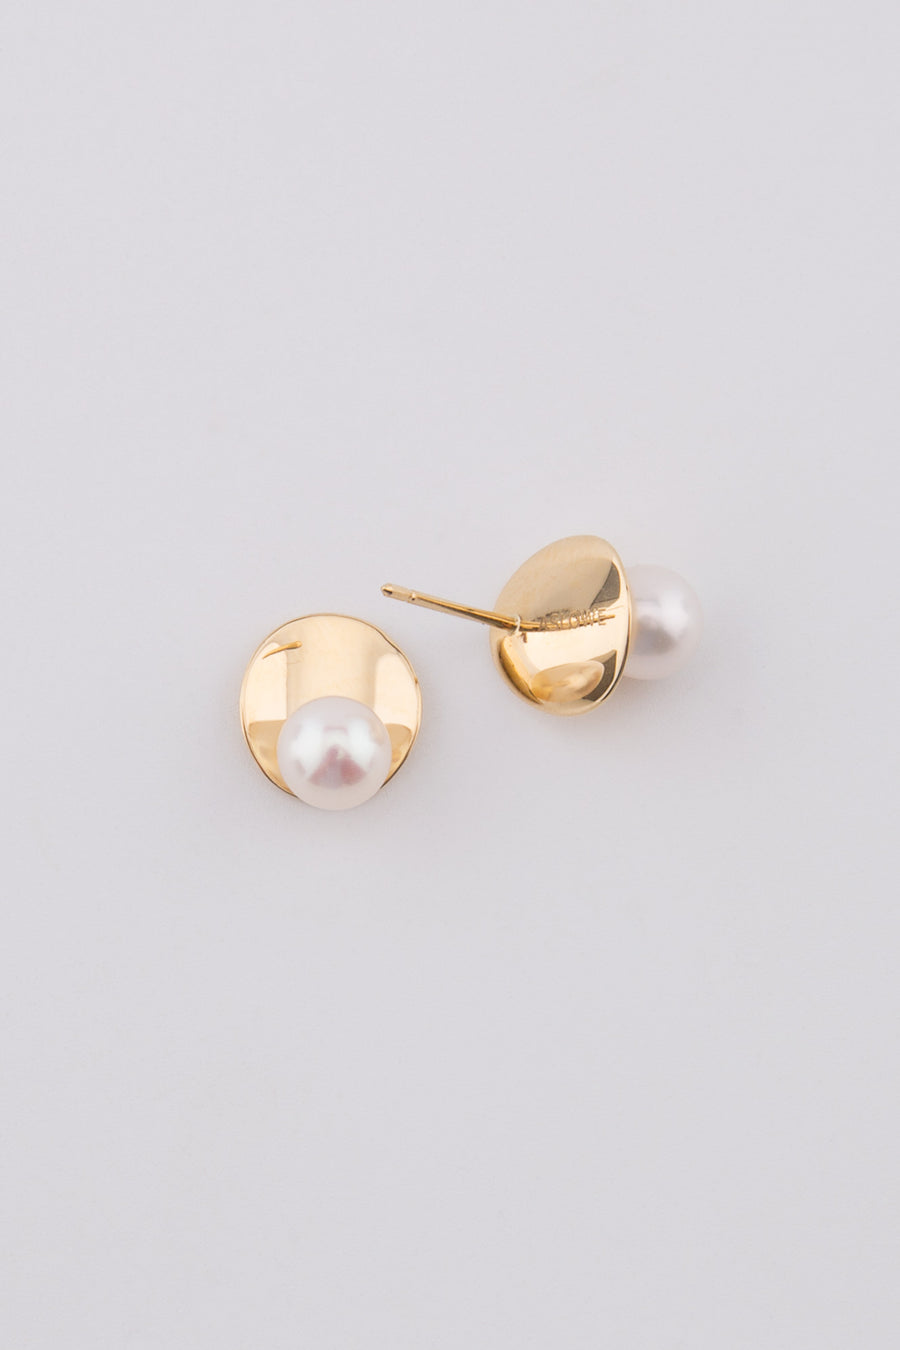 Candice 18K Gold white fresh water pearl earring 18k,y, 6-6.5mm